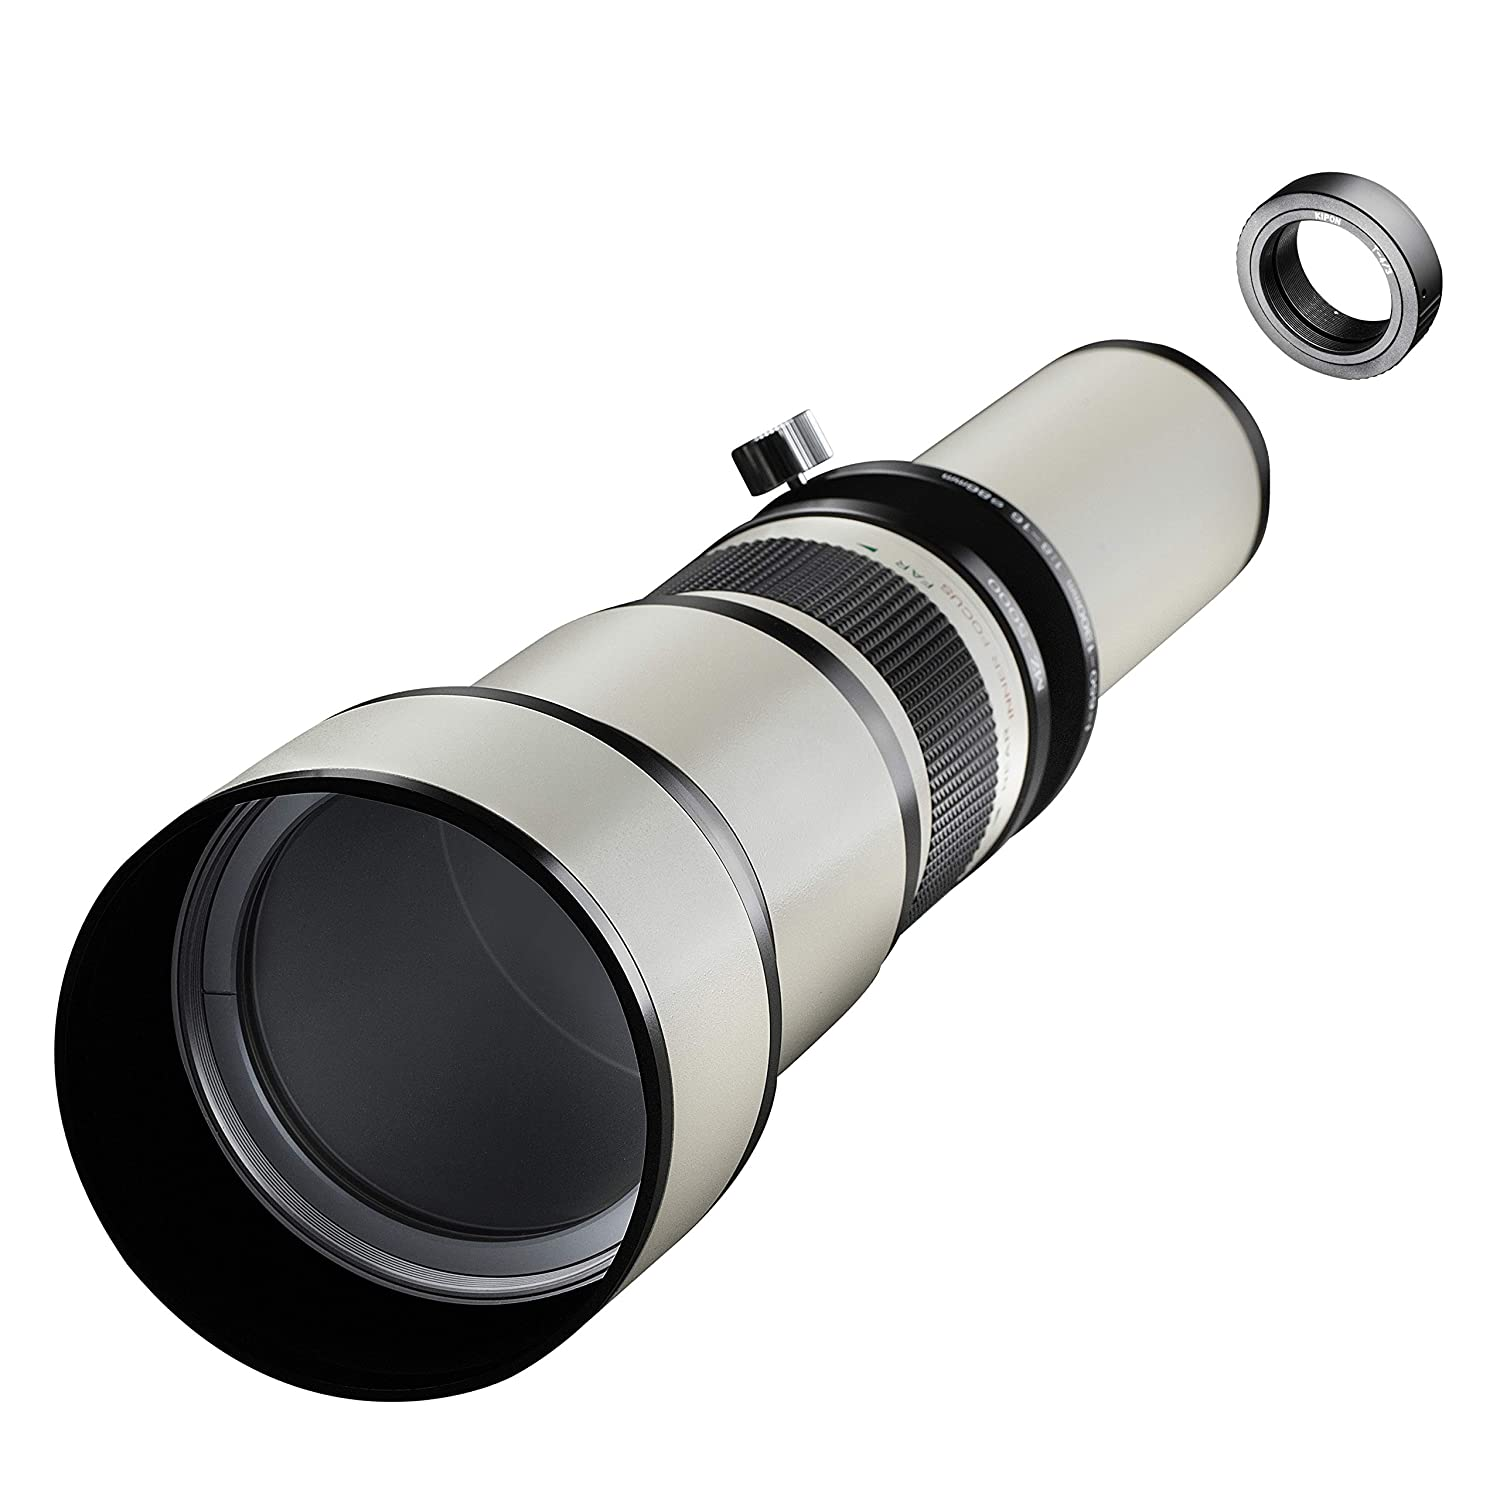 Samyang MF 650-1300 mm F8.0-16.0 DSLR 4/3   B07P6RYD99